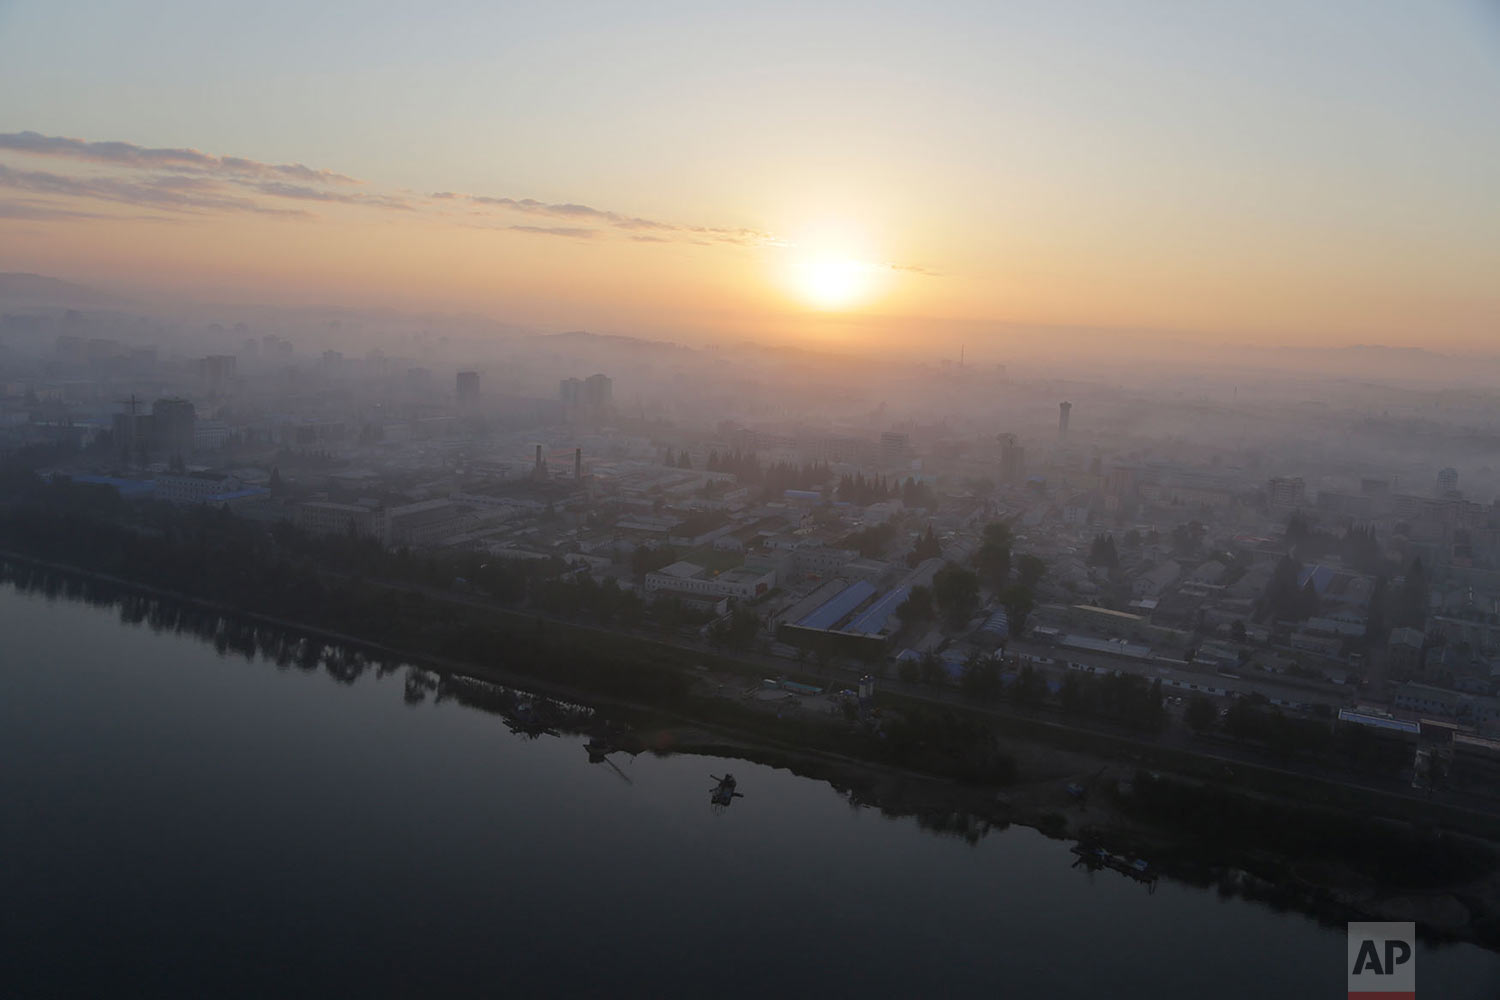 Apartment buildings peep out of the morning mist as the sun rises over Pyongyang, North Korea, on Aug. 28, 2014. (AP Photo/Wong Maye-E)